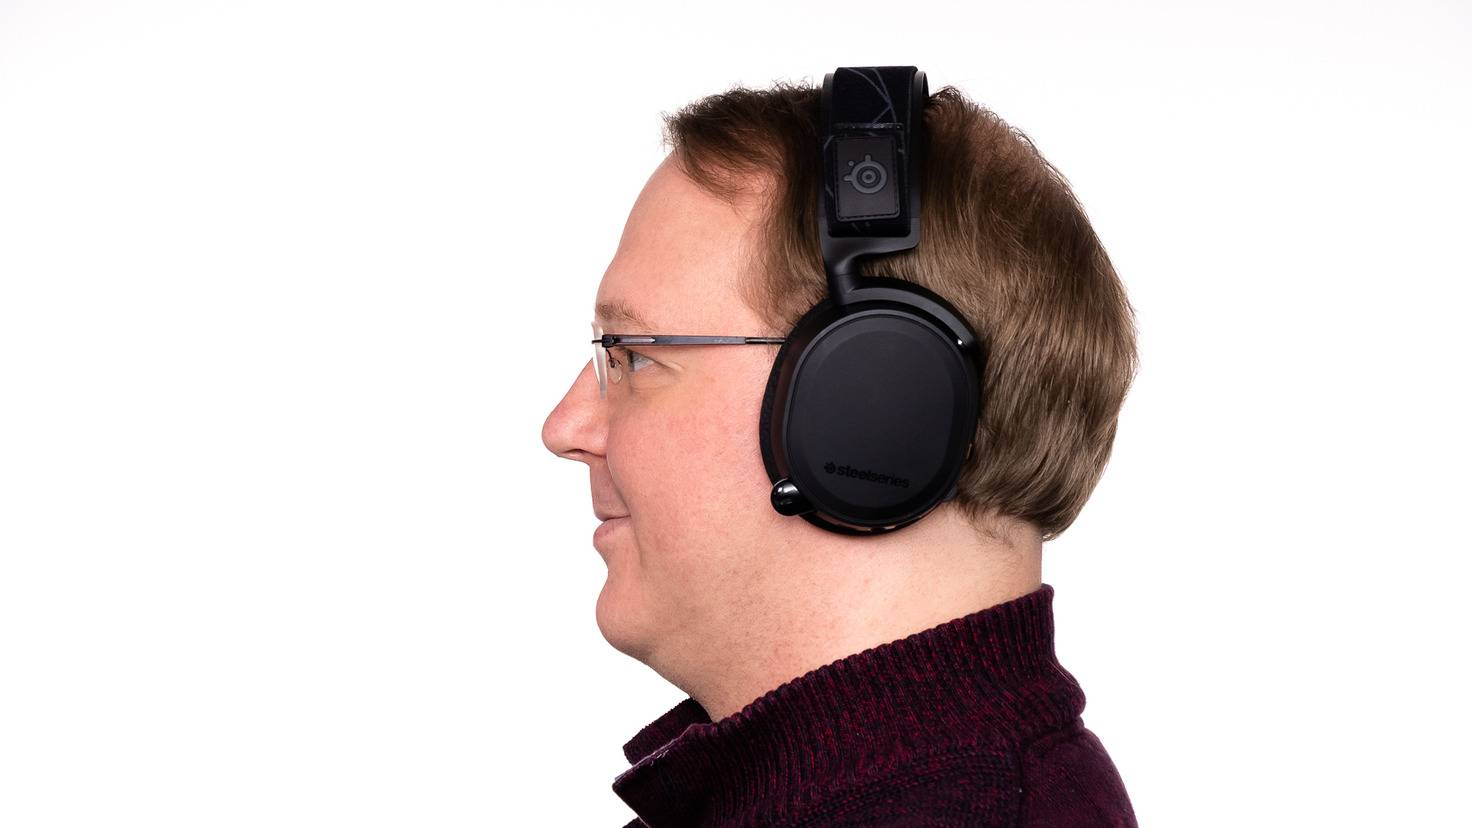 Andreas-Steelseries-Arcis-7